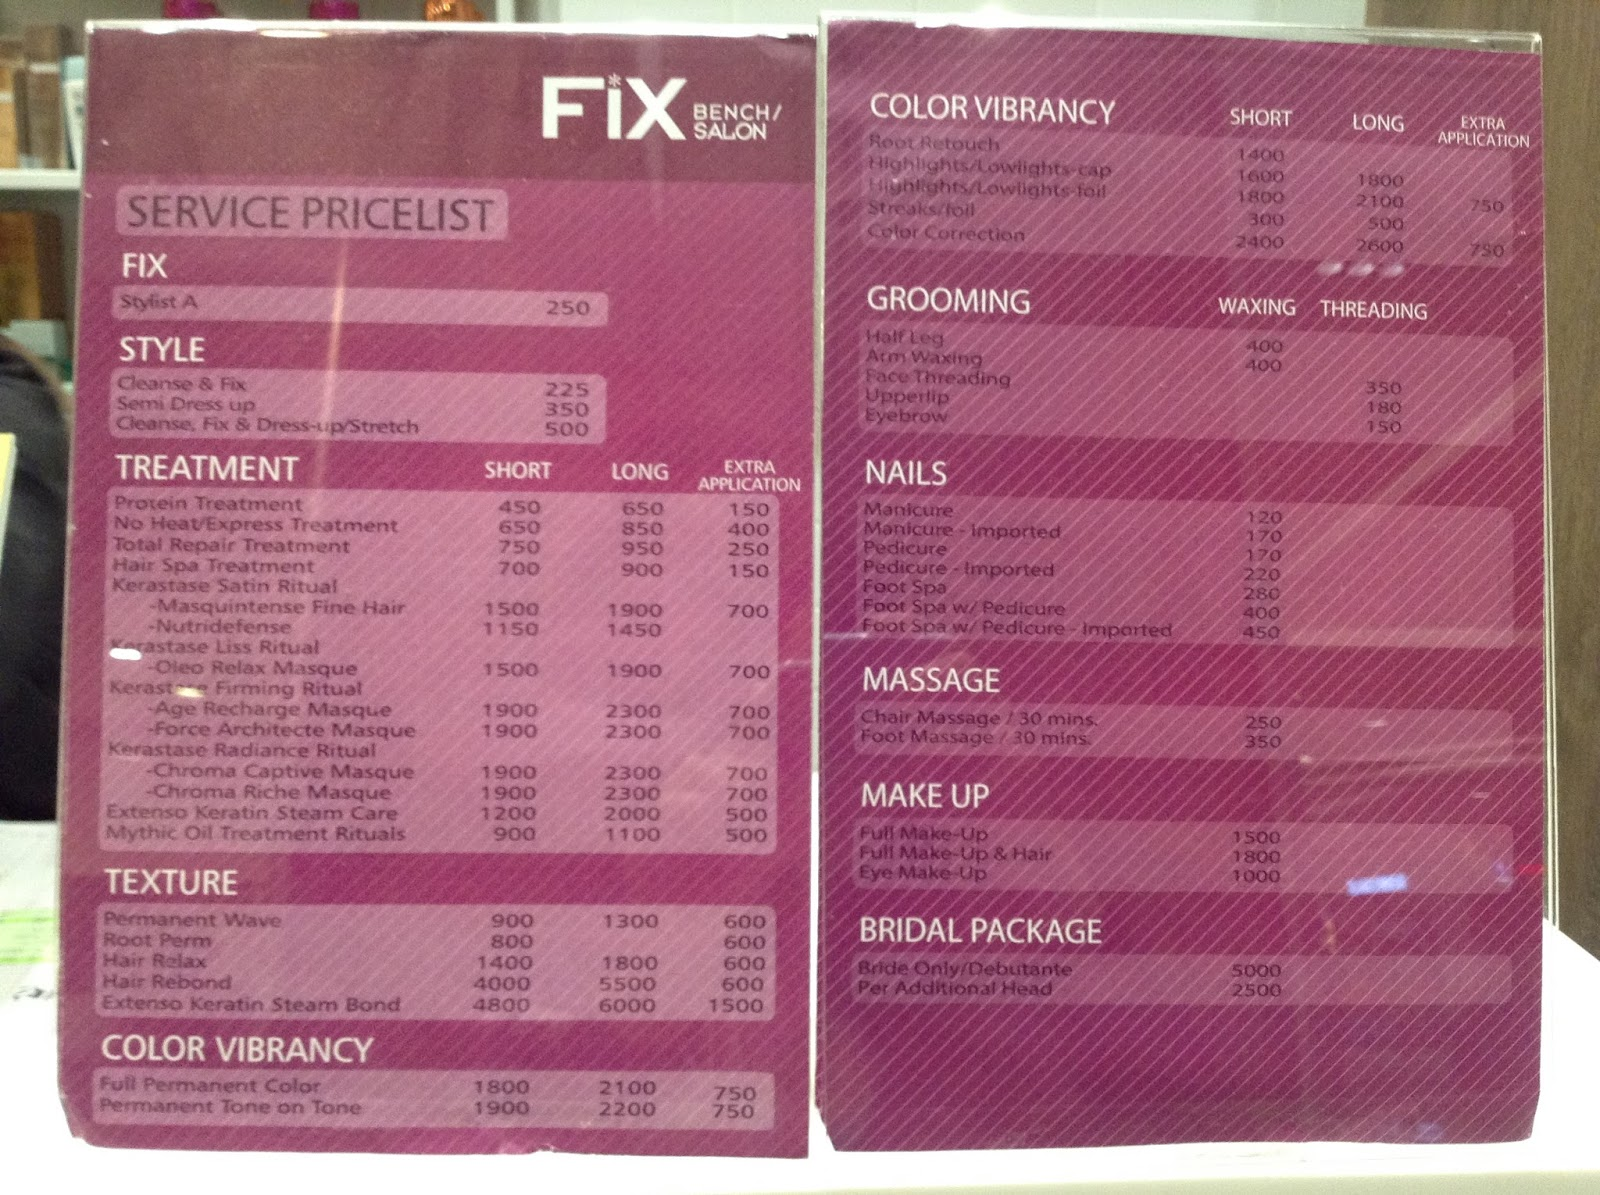 FIX: Bench Salon at SM San Lazaro Branch - The Foodinista